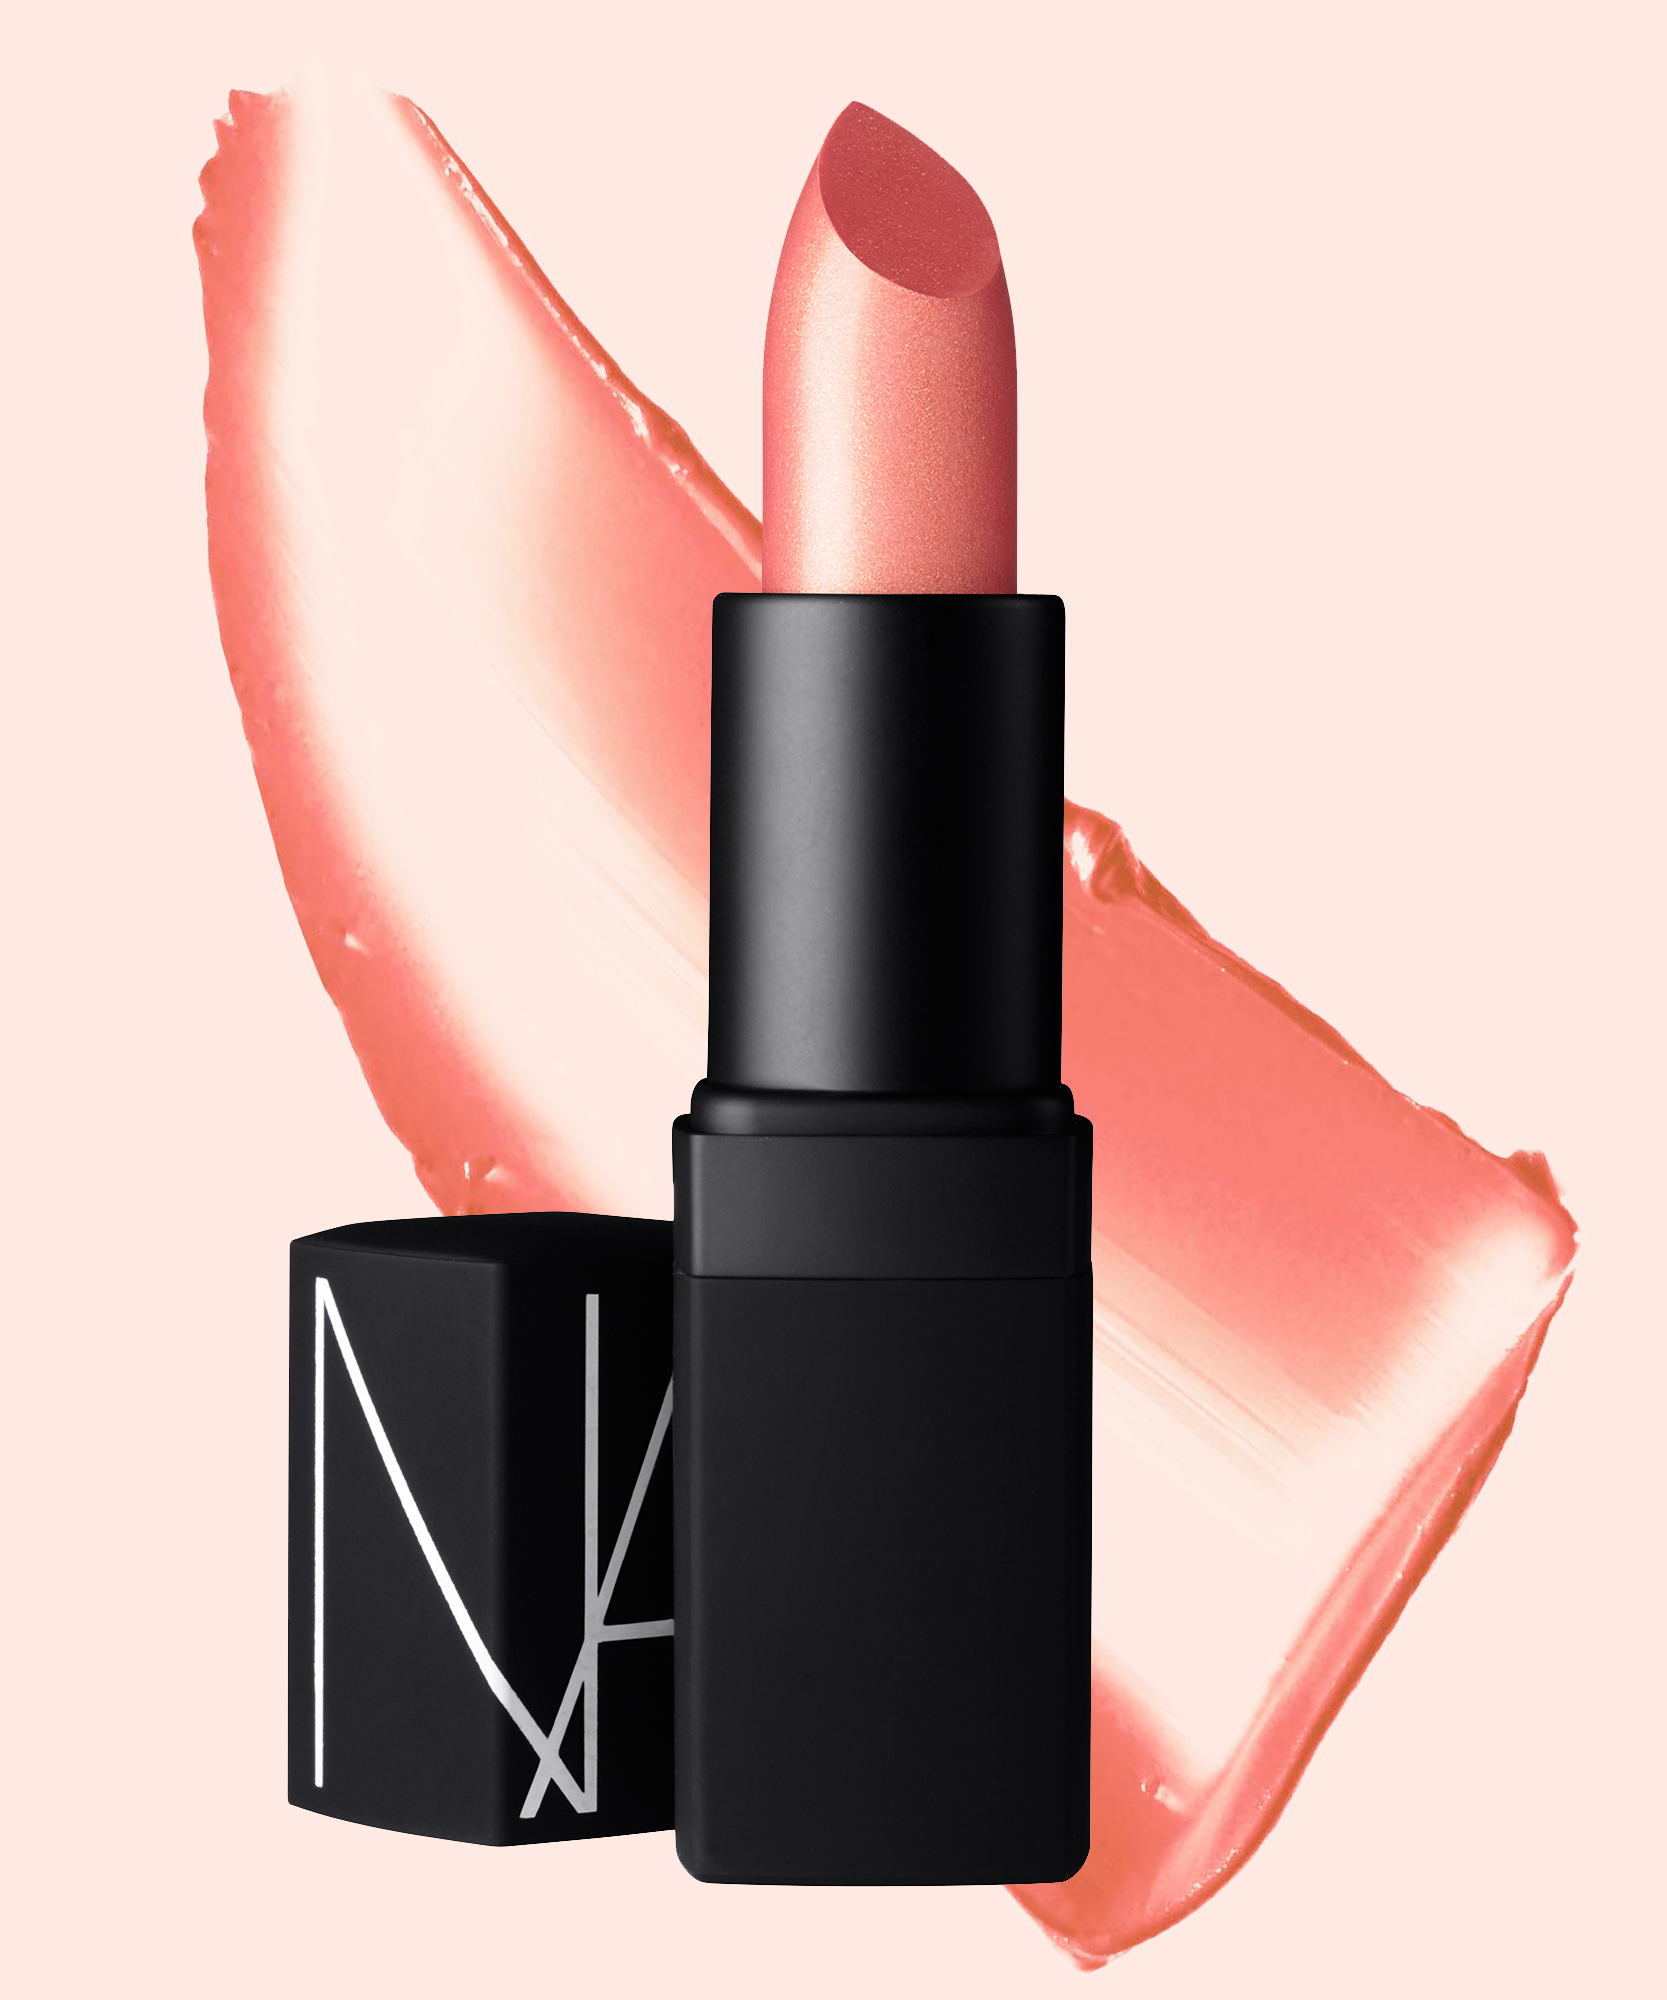 NARS Just Launched a New Orgasm Lipstick—and We Put It to the Test